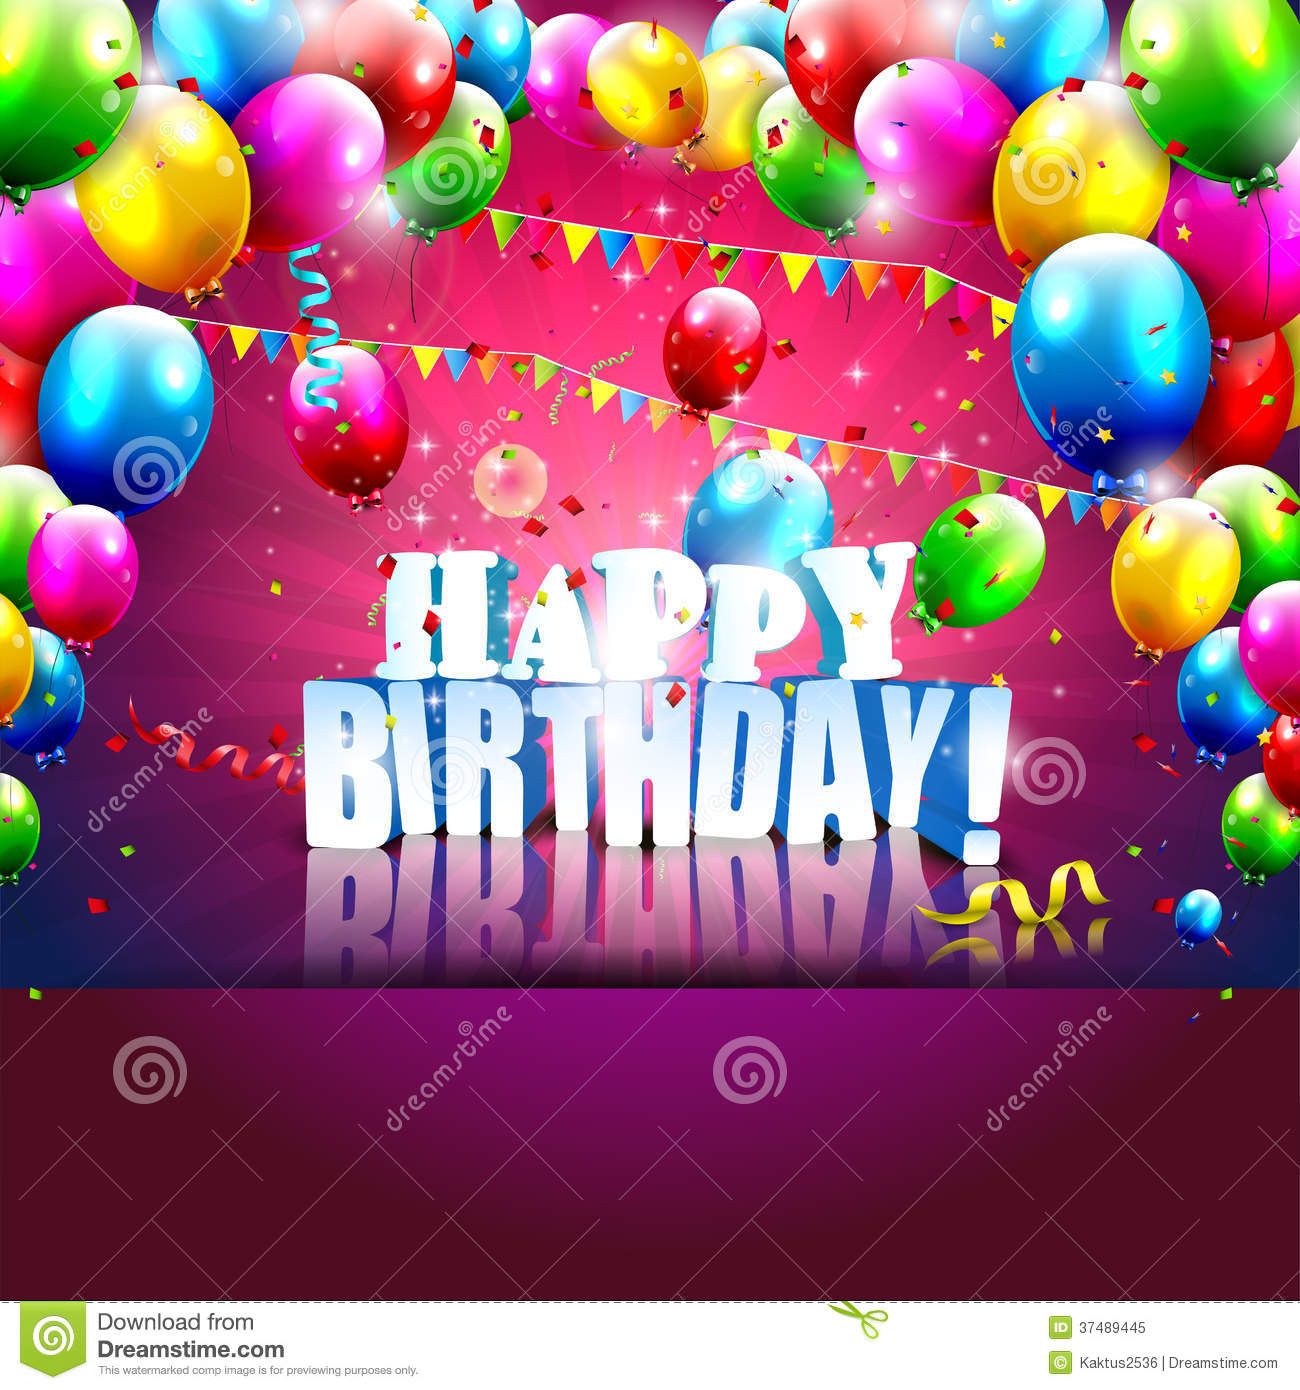 birthday posters free download ; birthday-poster-realistic-colorful-balloons-d-text-vector-background-copyspace-37489445